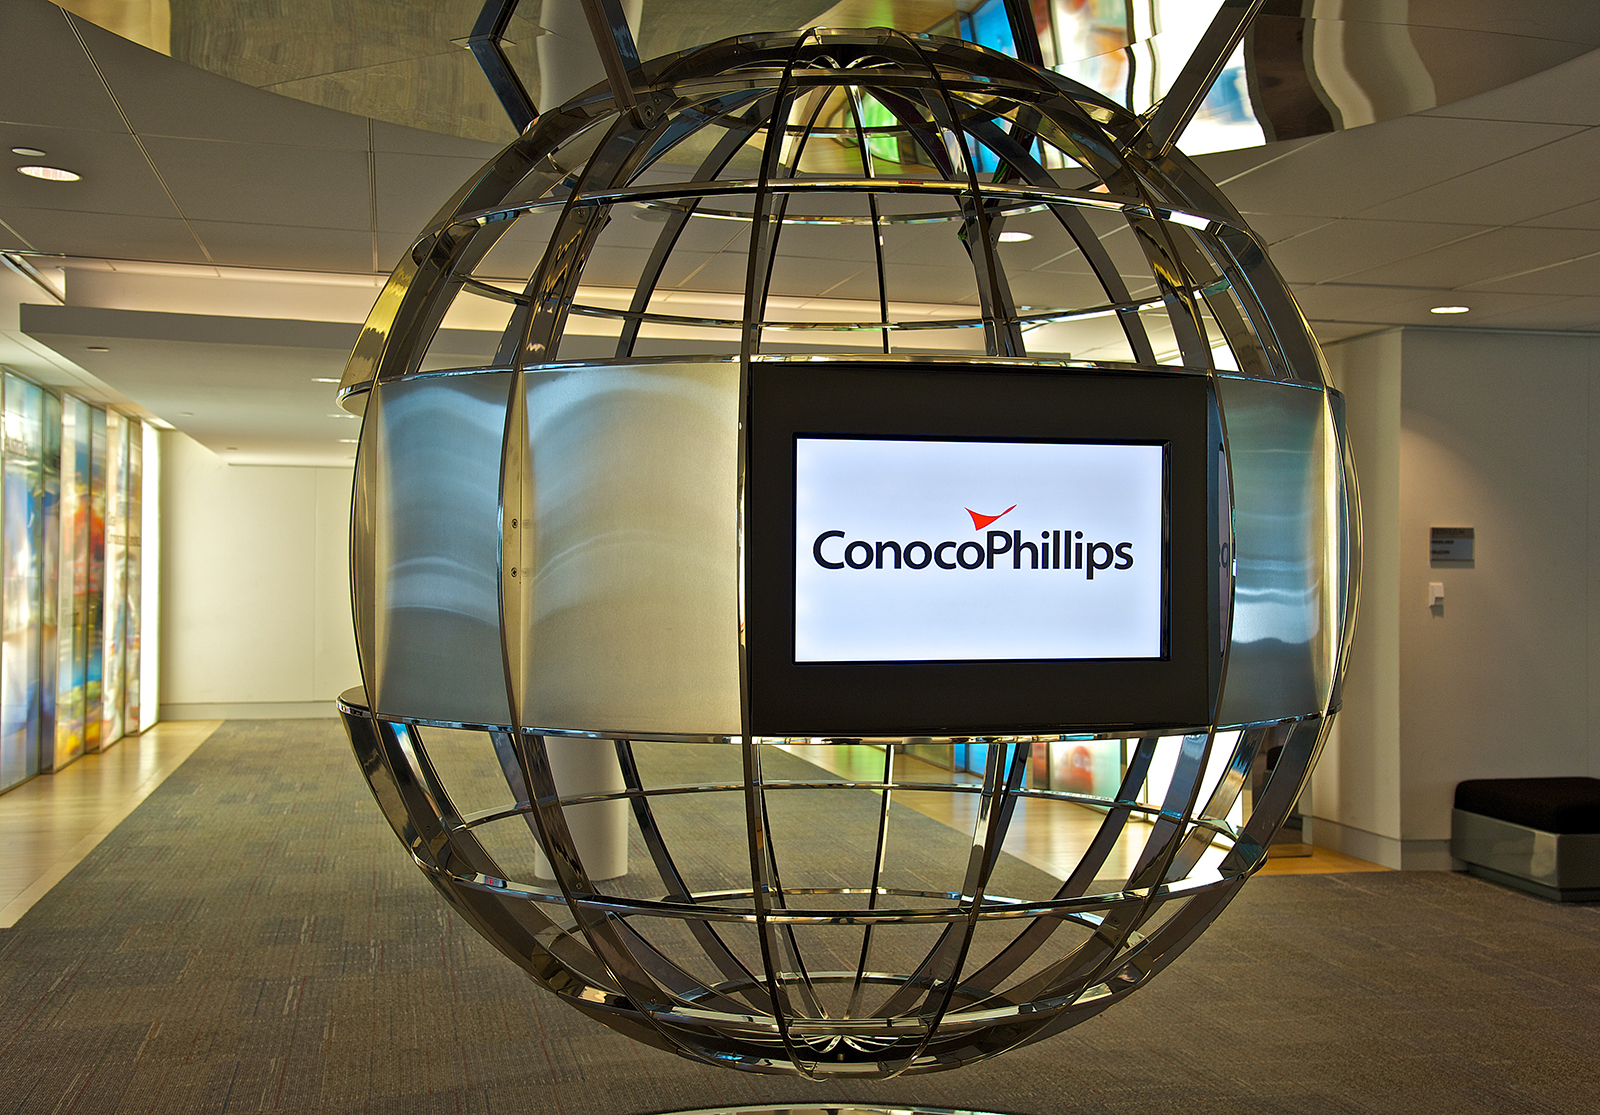 Does ConocoPhillips (COP)'s current closing price competes the market?